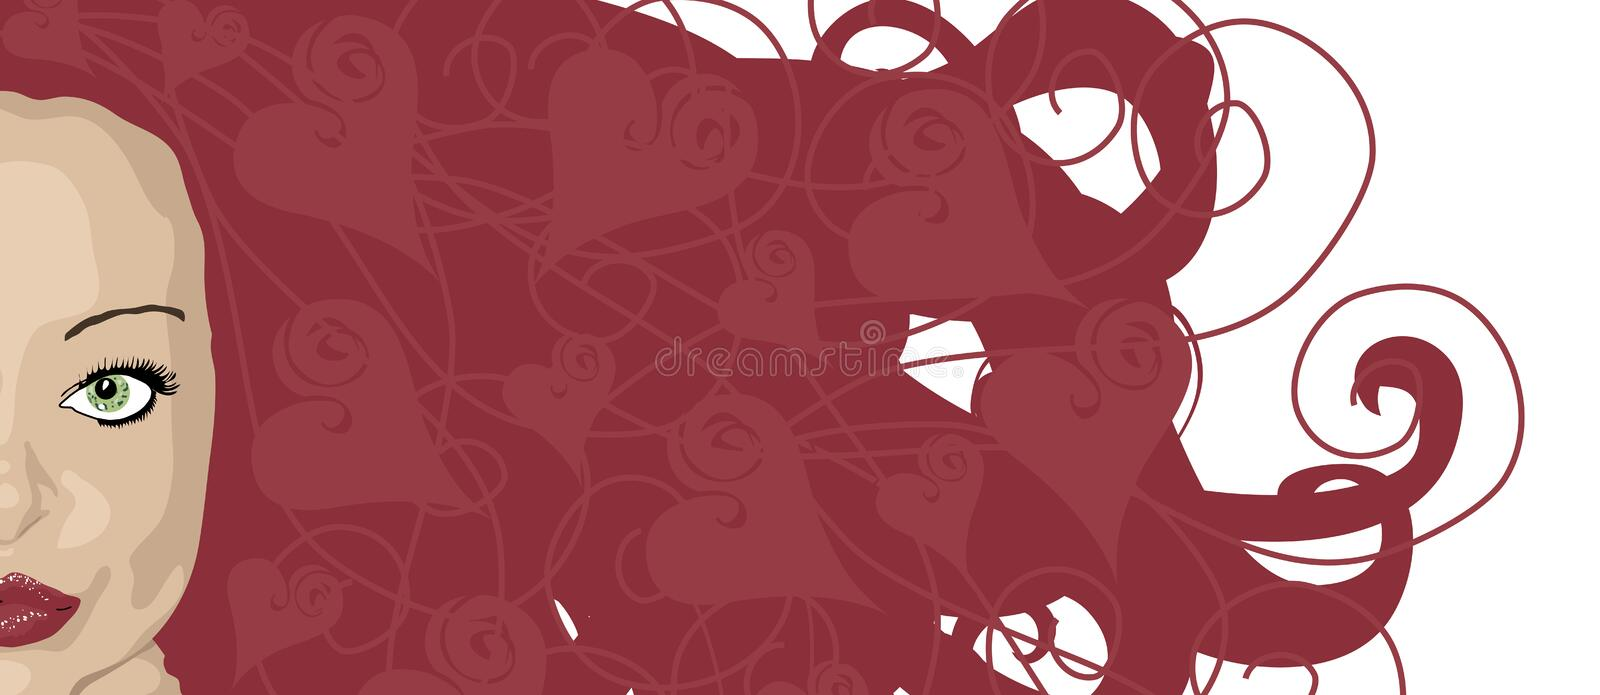 Hearty Hair Red. Illustration banner of woman with red hair and heart highlights stock illustration